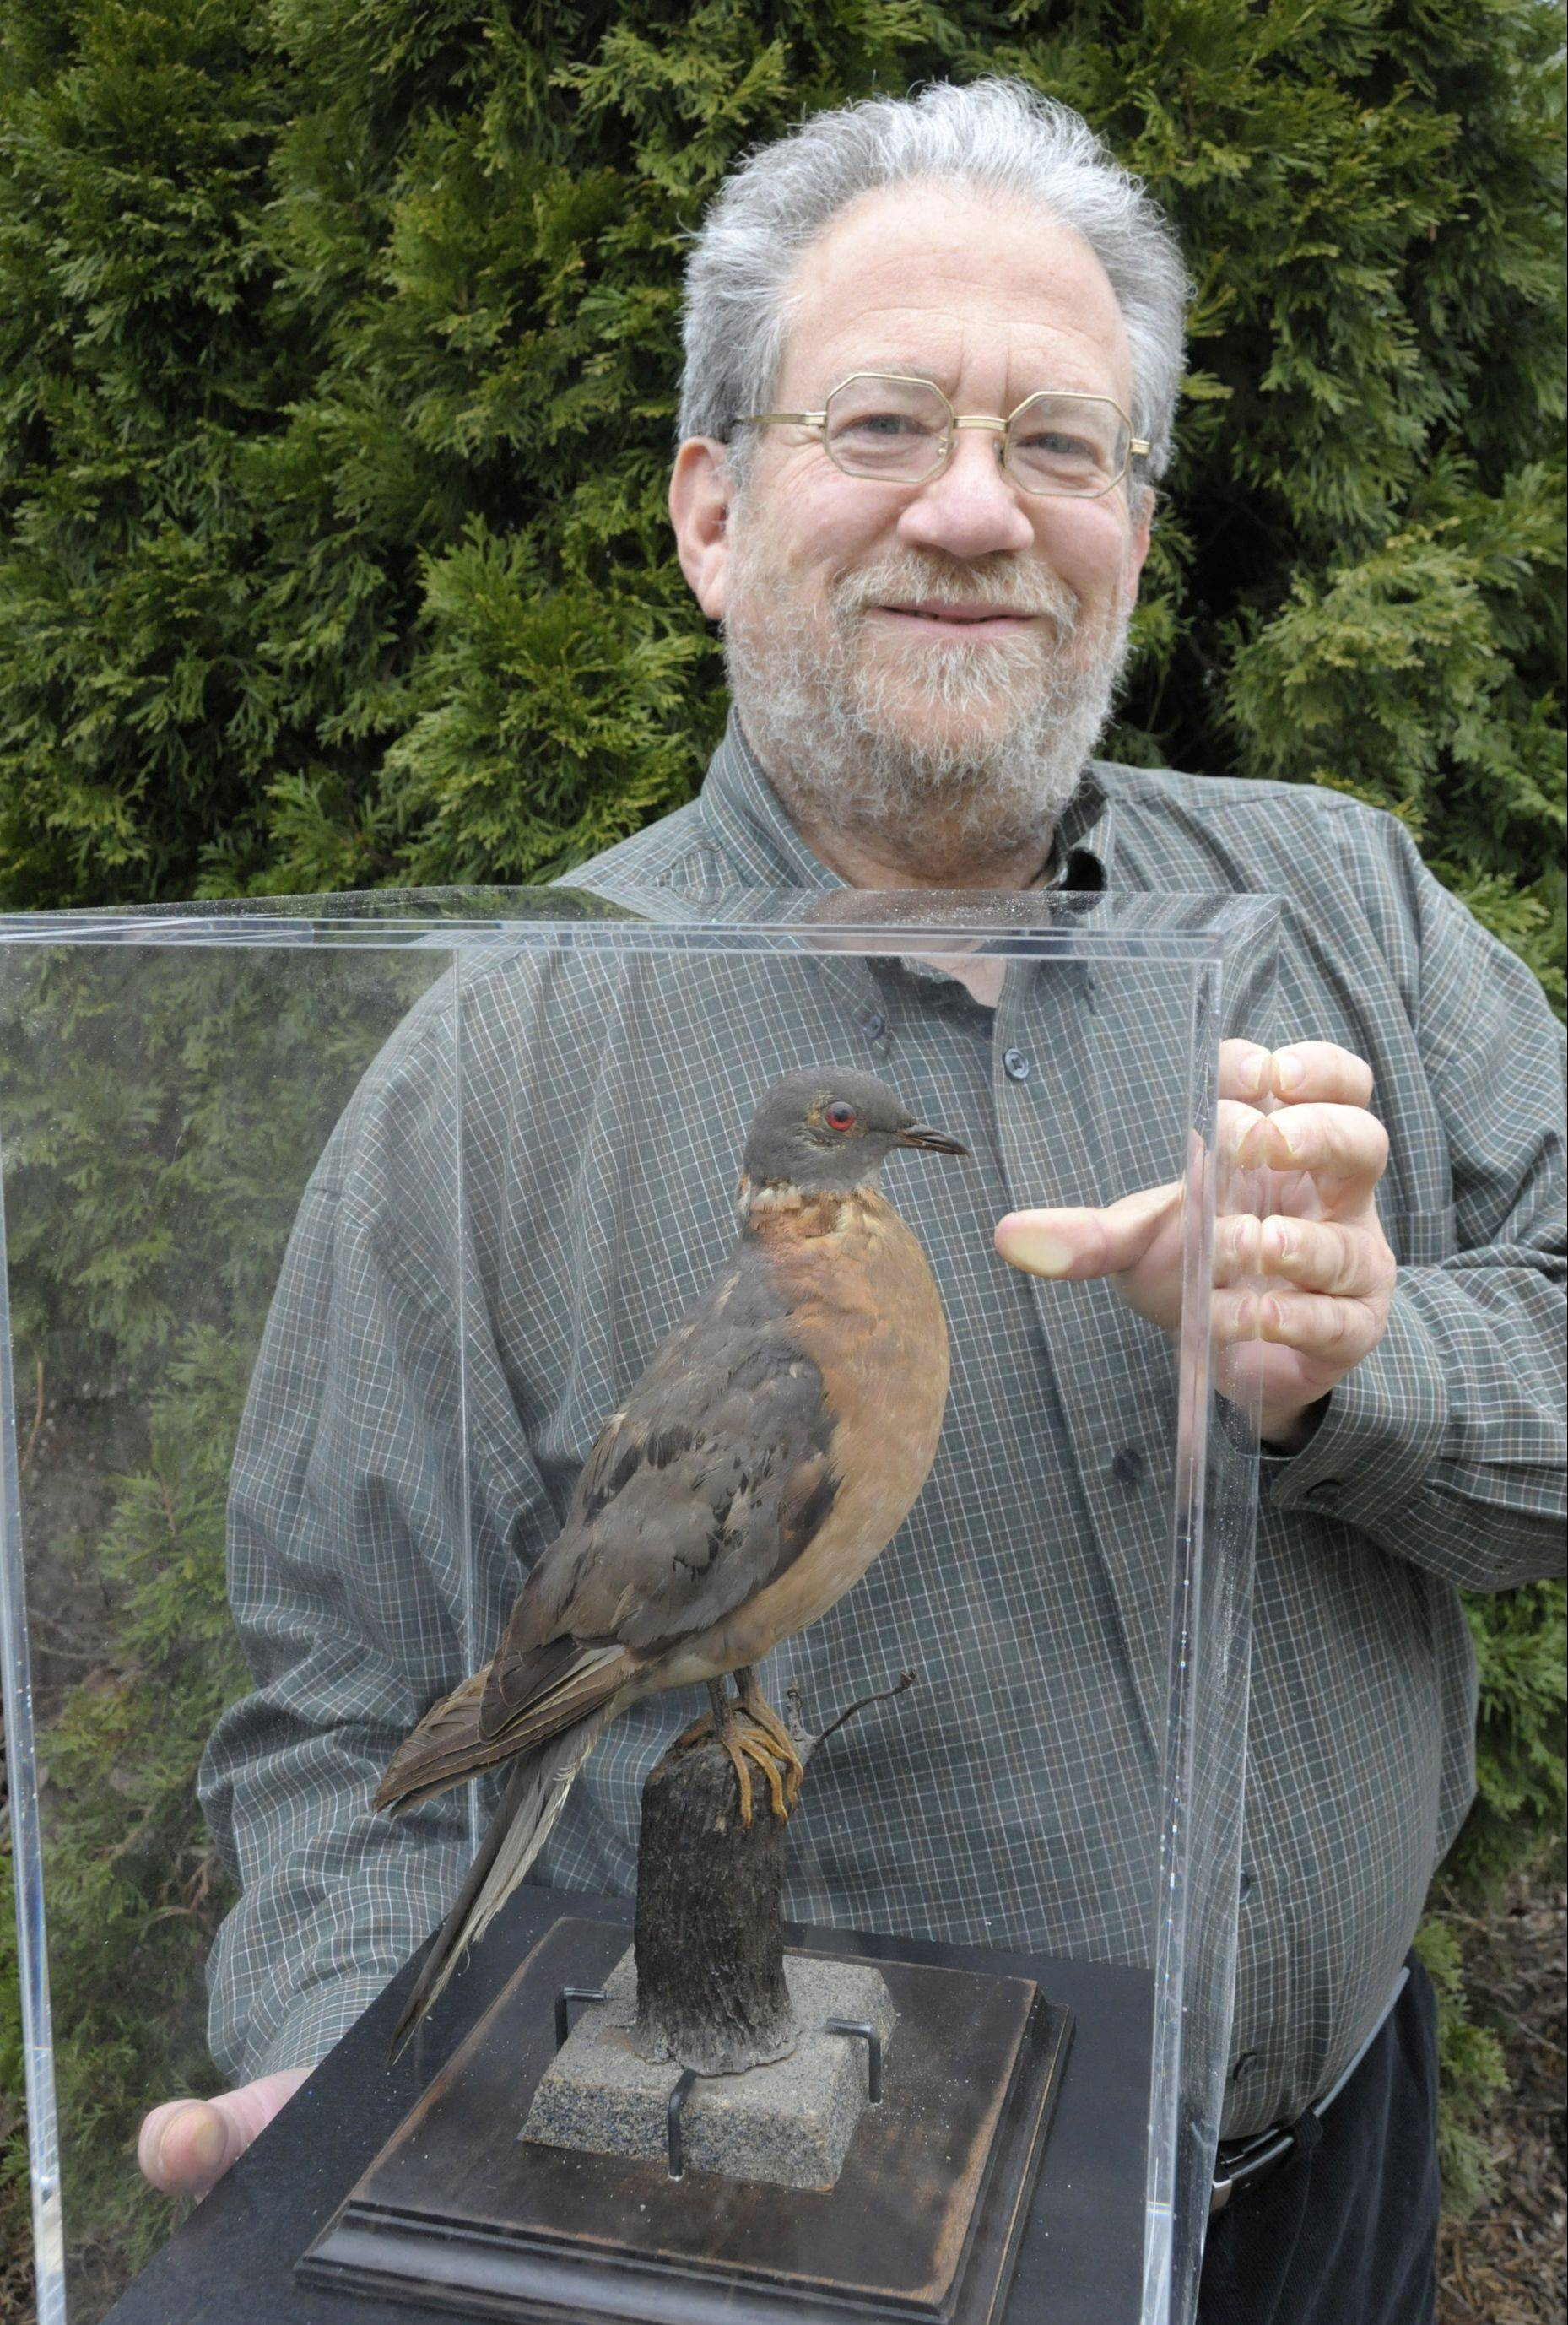 "Joel Greenberg of Westmont, displaying his stuffed passenger pigeon, has recently released a book titled ""A Feathered River Across the Sky: The Passenger Pigeon's Flight to Extinction."" Greenberg will discuss the passenger pigeon and sign copies of his book on March 5 in St. Charles."